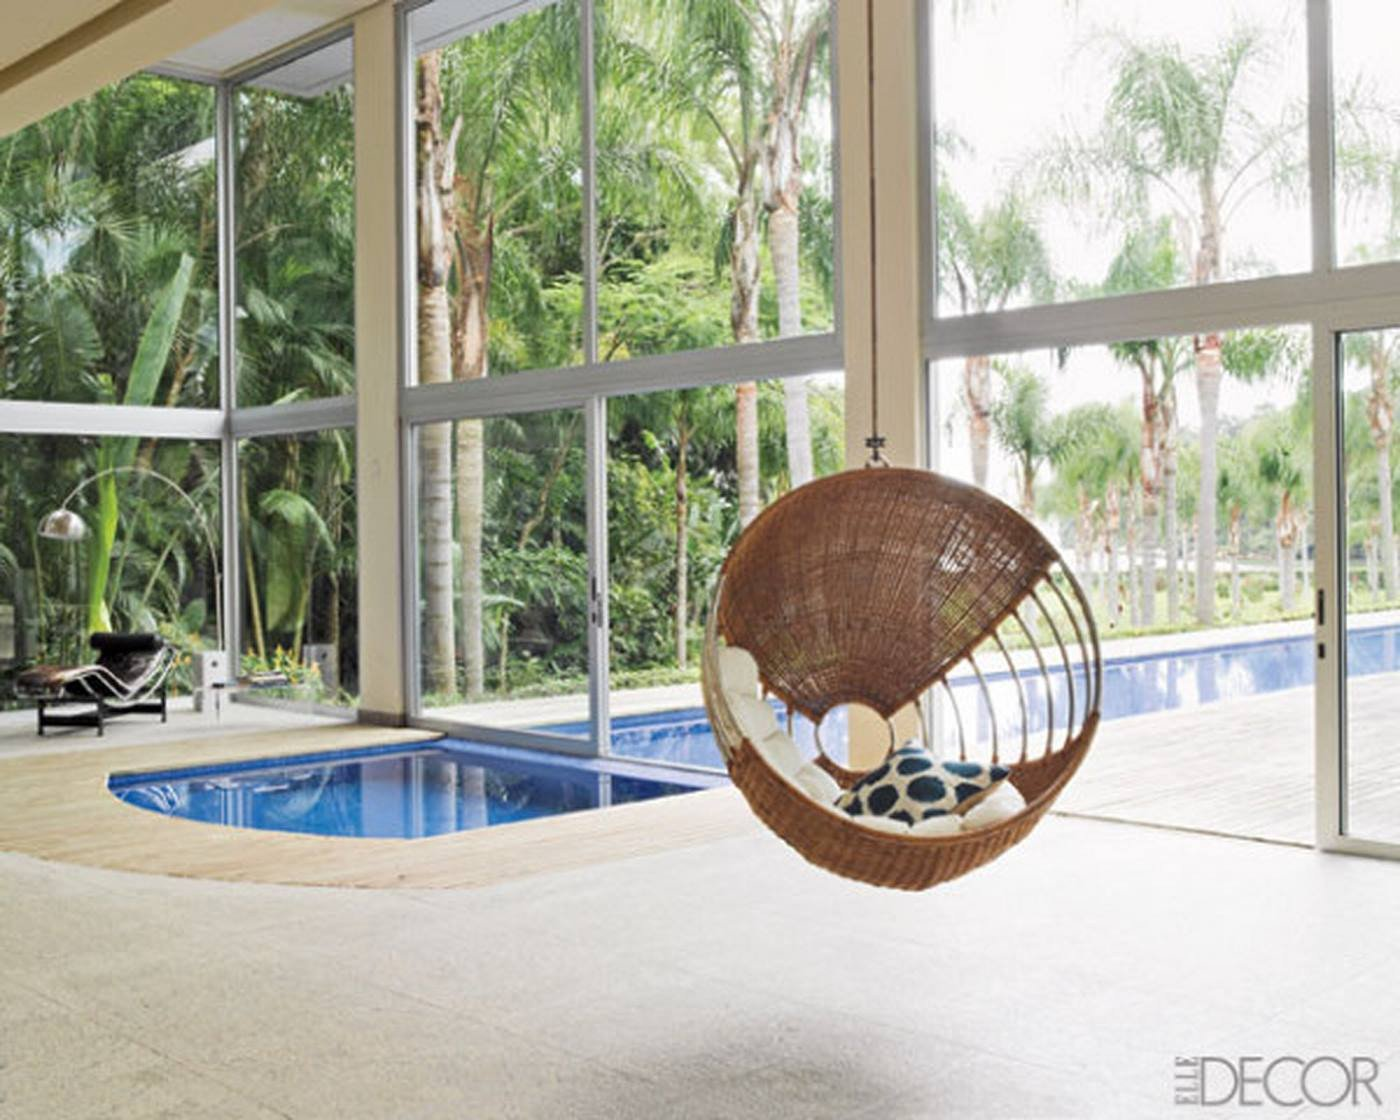 Comfortable Living Room Amazing Luxury fortable Living Space with Indoor Pool Big Glass Door and Outdoor Pool with Natural View